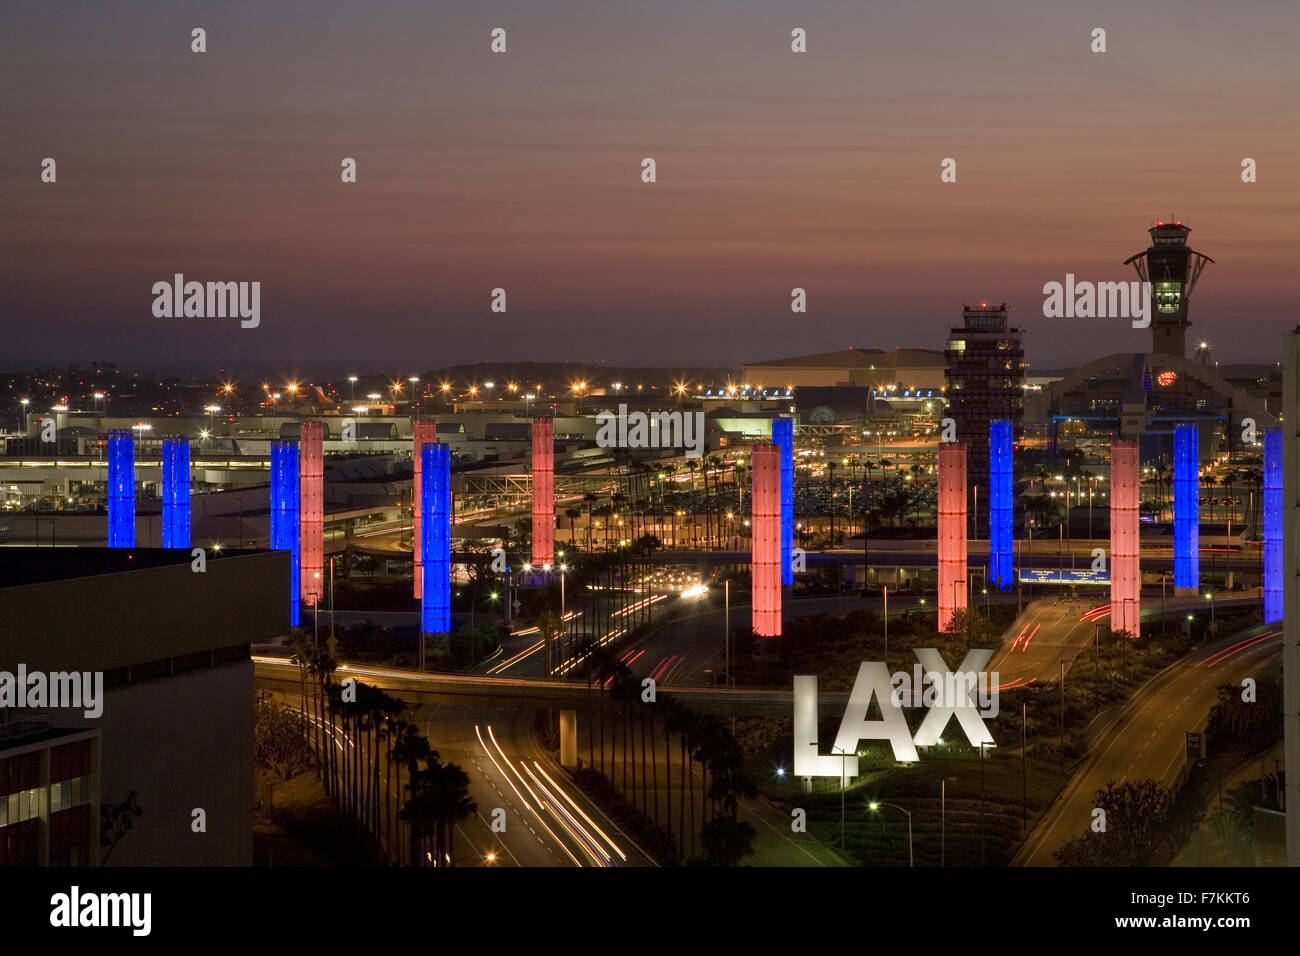 Aerial view of LAX Los Angeles International Airport at sunset with decorative light tubes, Los Angeles, California Stock Photo